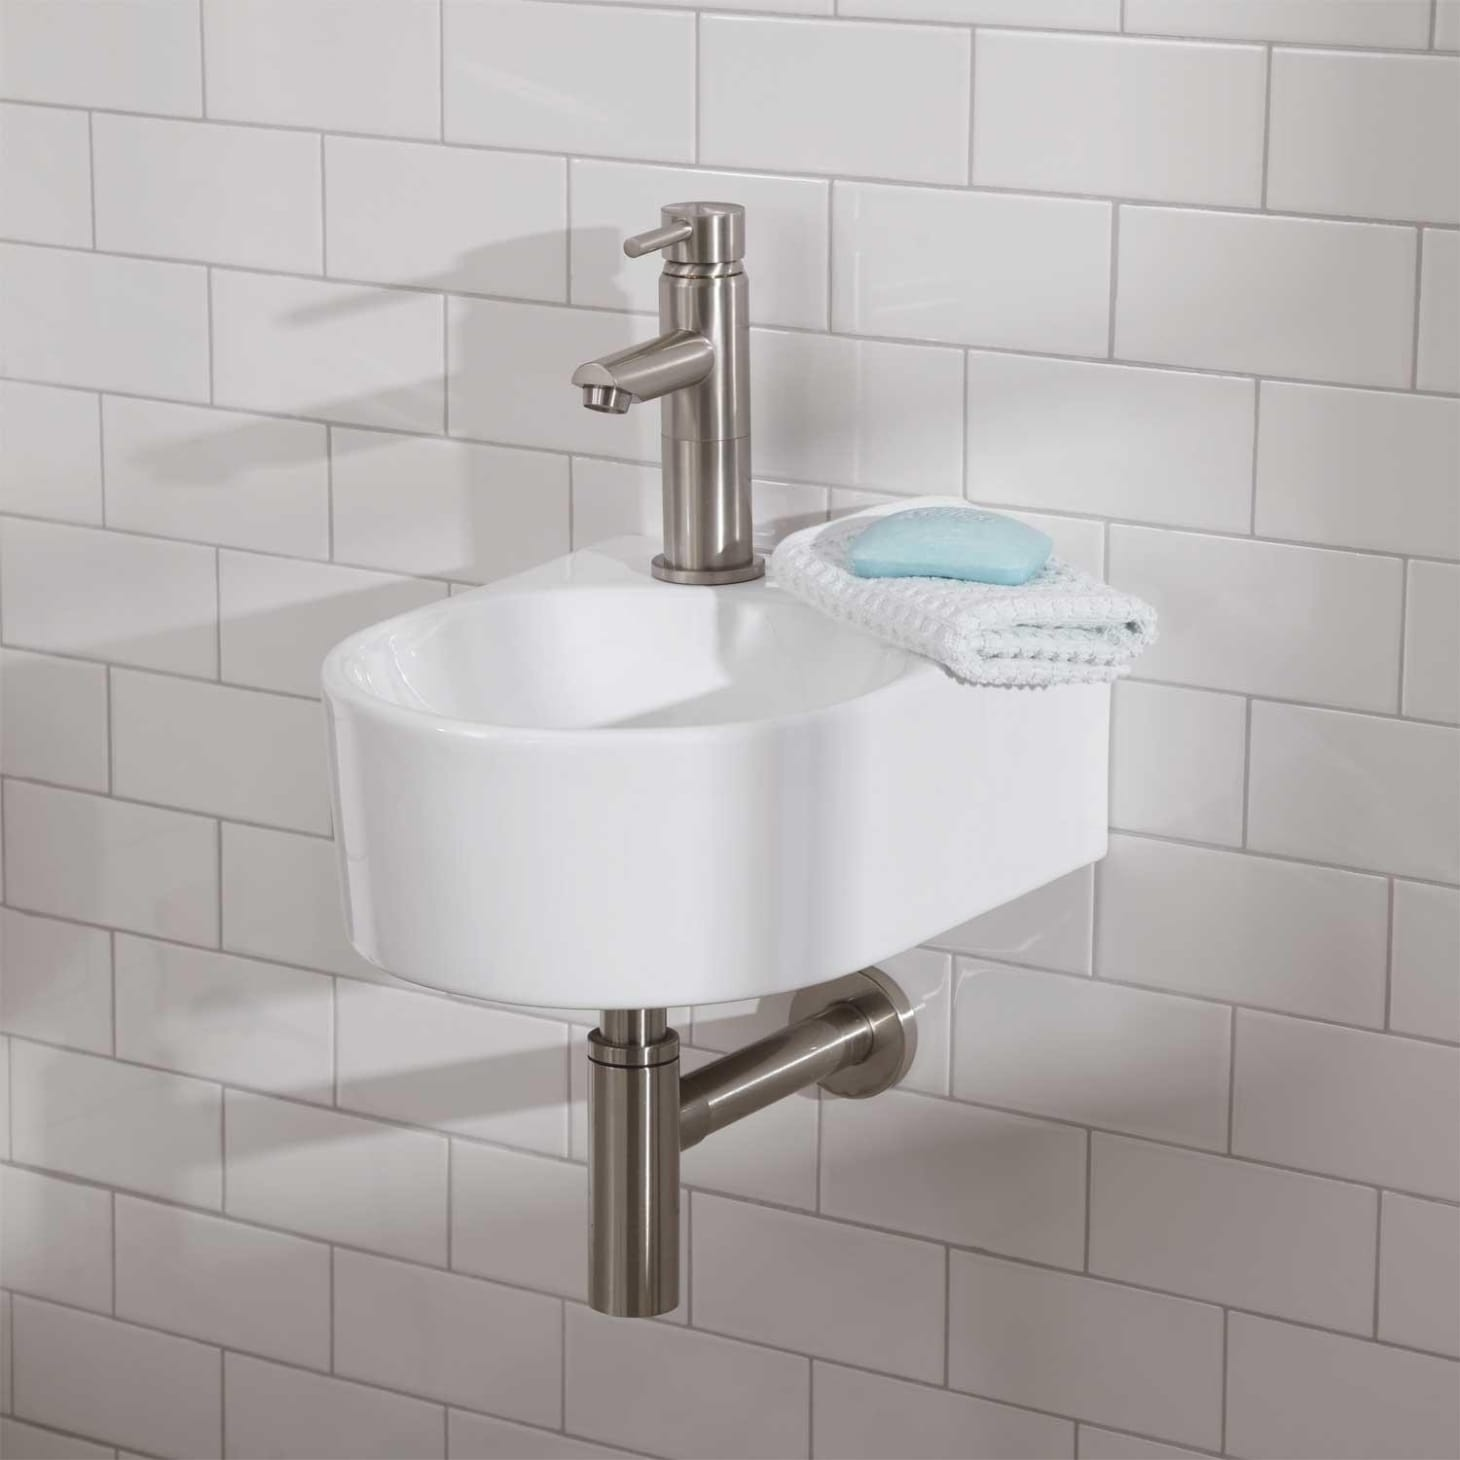 Small bathroom vanities and sinks for tiny spaces - Small powder room sinks ...